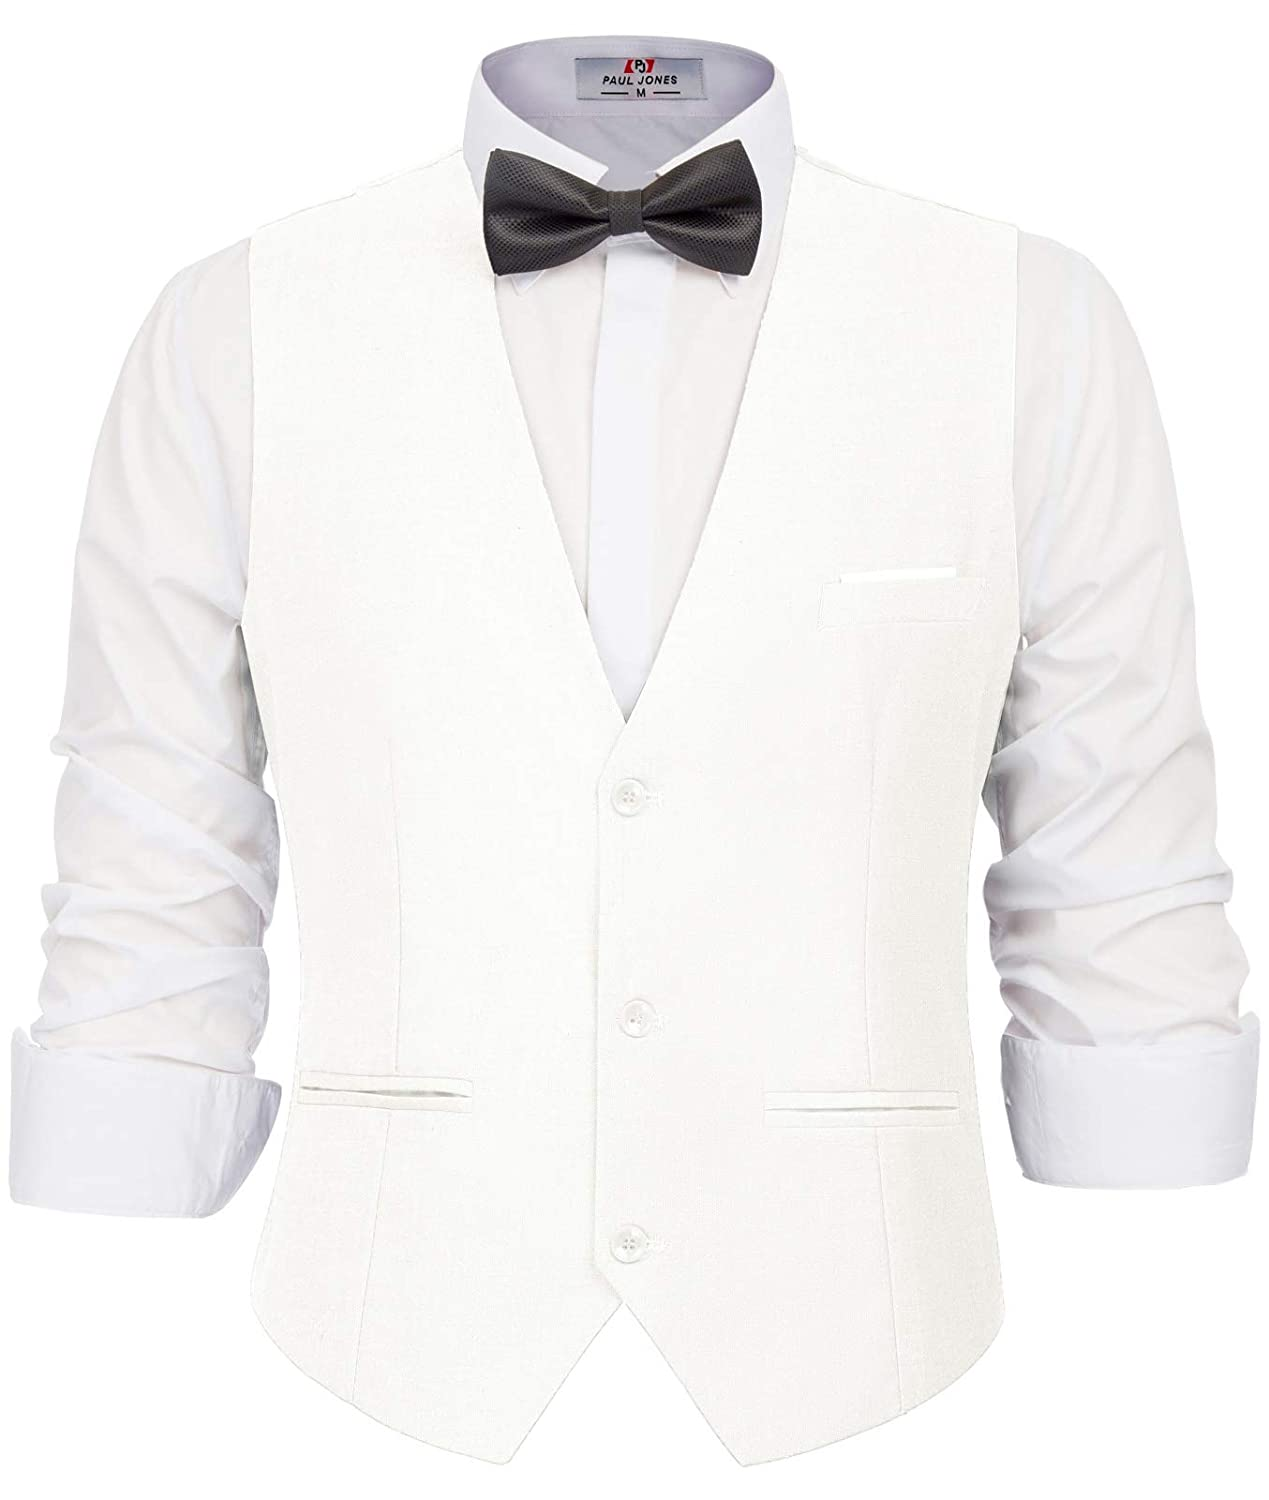 1920s Style Mens Vests PAUL JONES Mens Business Suit Vests Slim Fit 3 Button Formal Waistcoat $24.99 AT vintagedancer.com